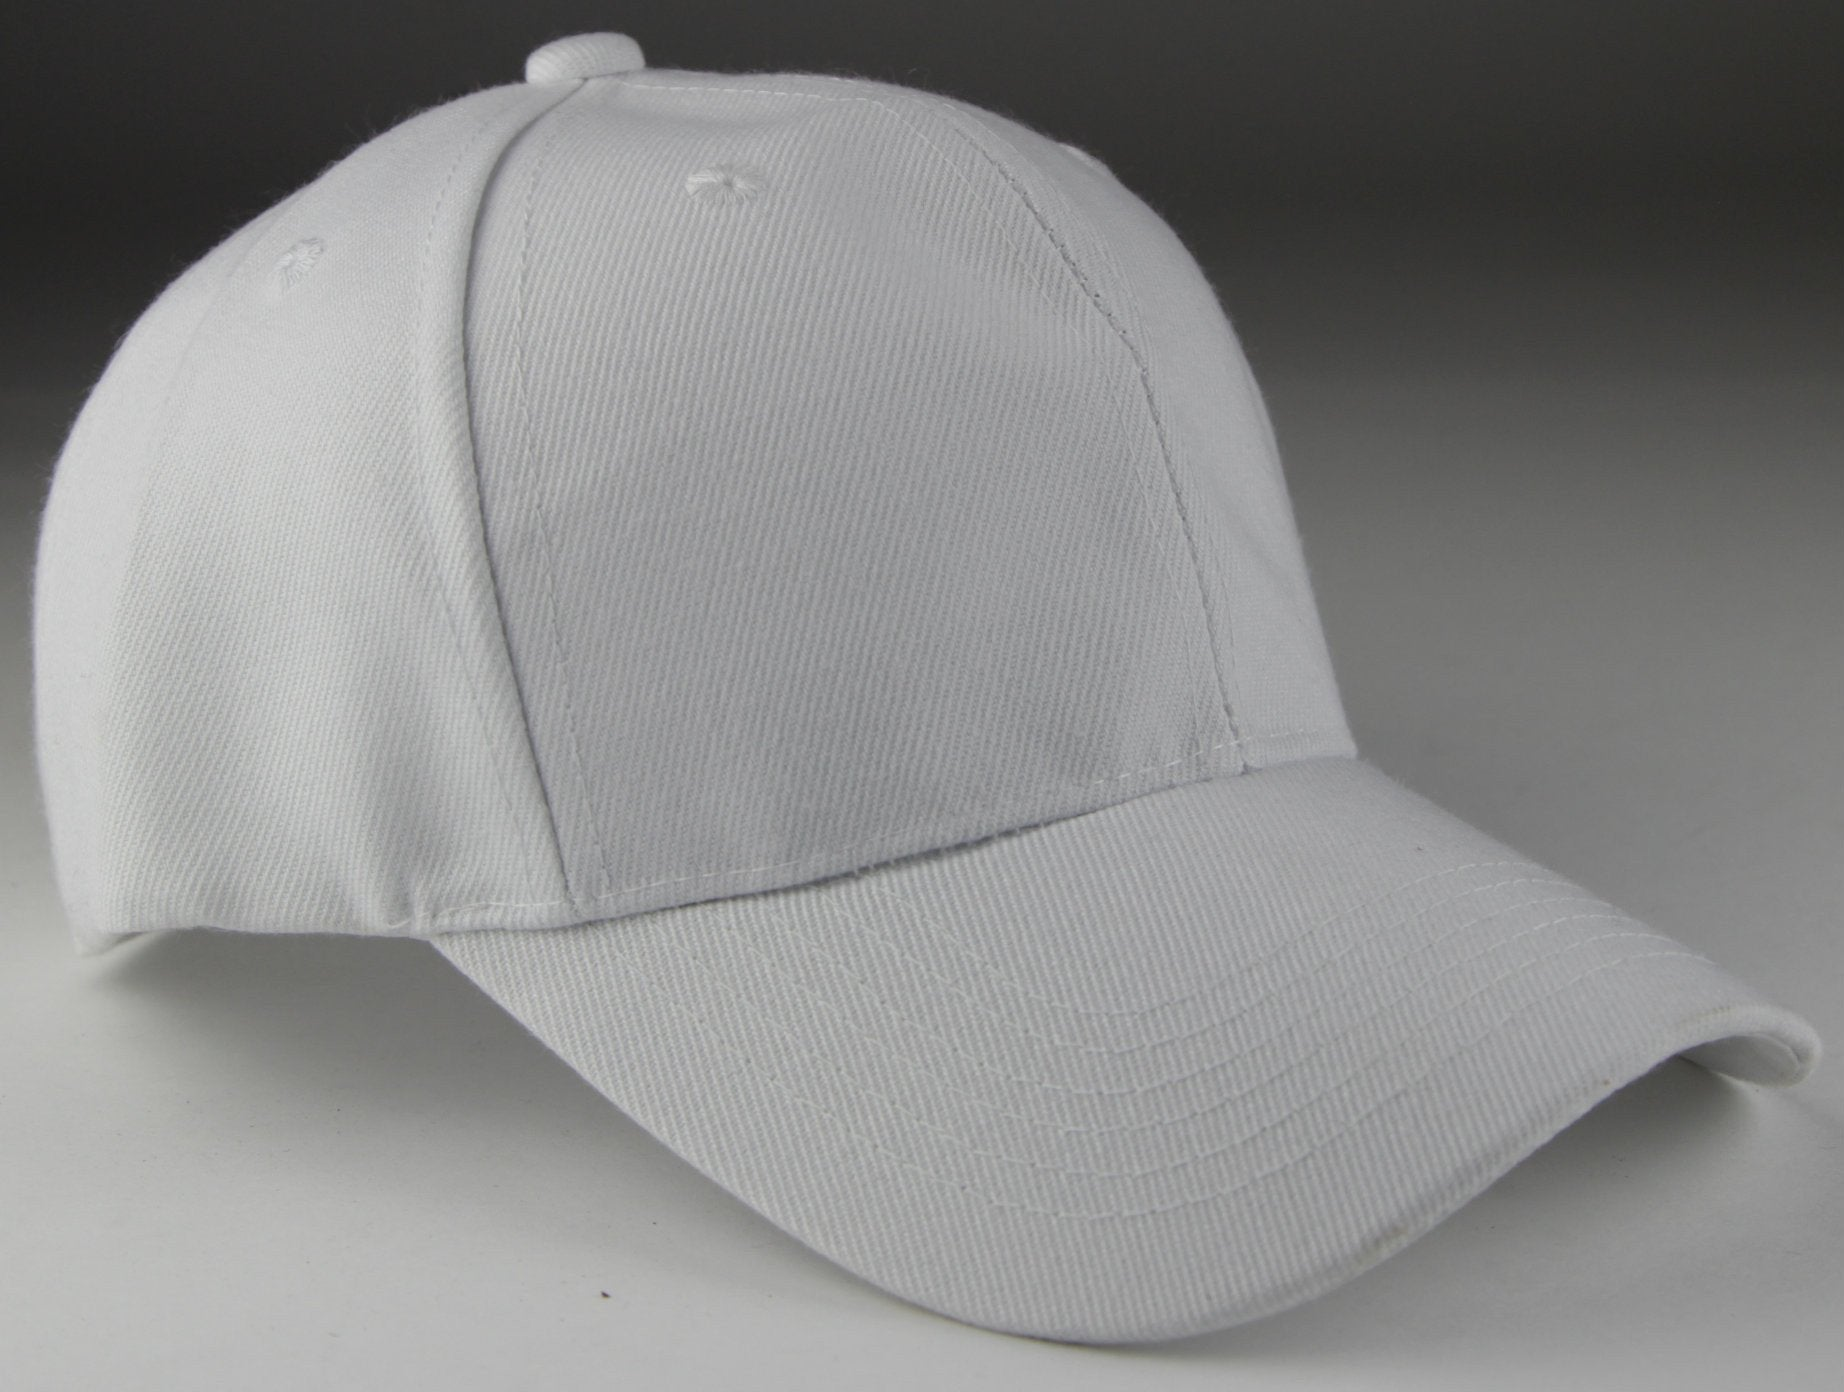 Velcro Baseball Hat White (Pc)